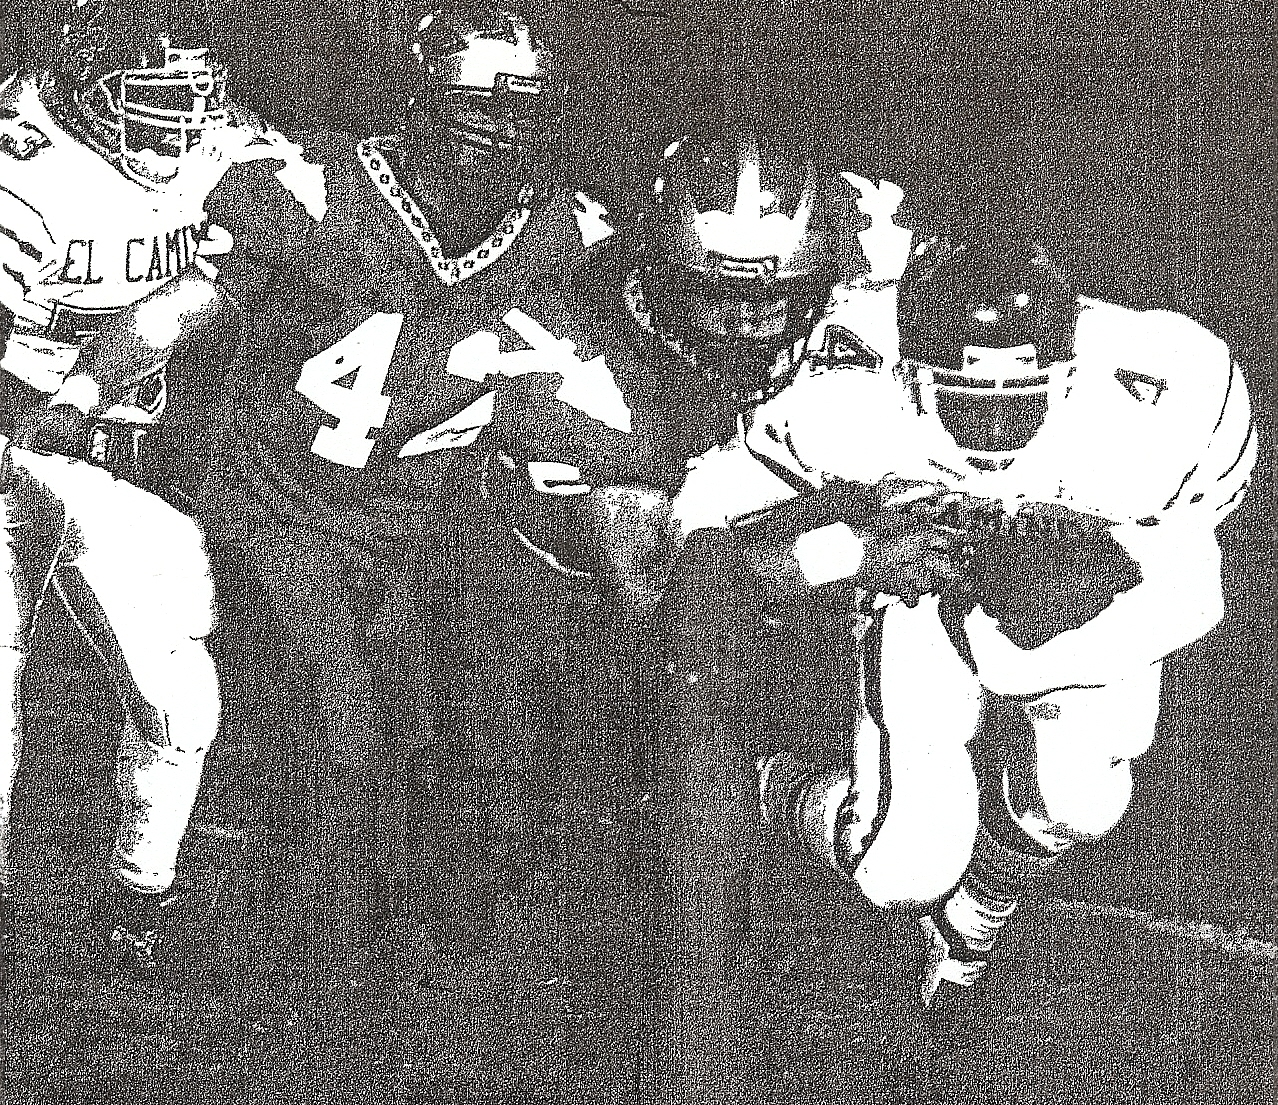 Fallbrook's Sean Sovacool, tackling El Camino's Chris Williams, was future coach.